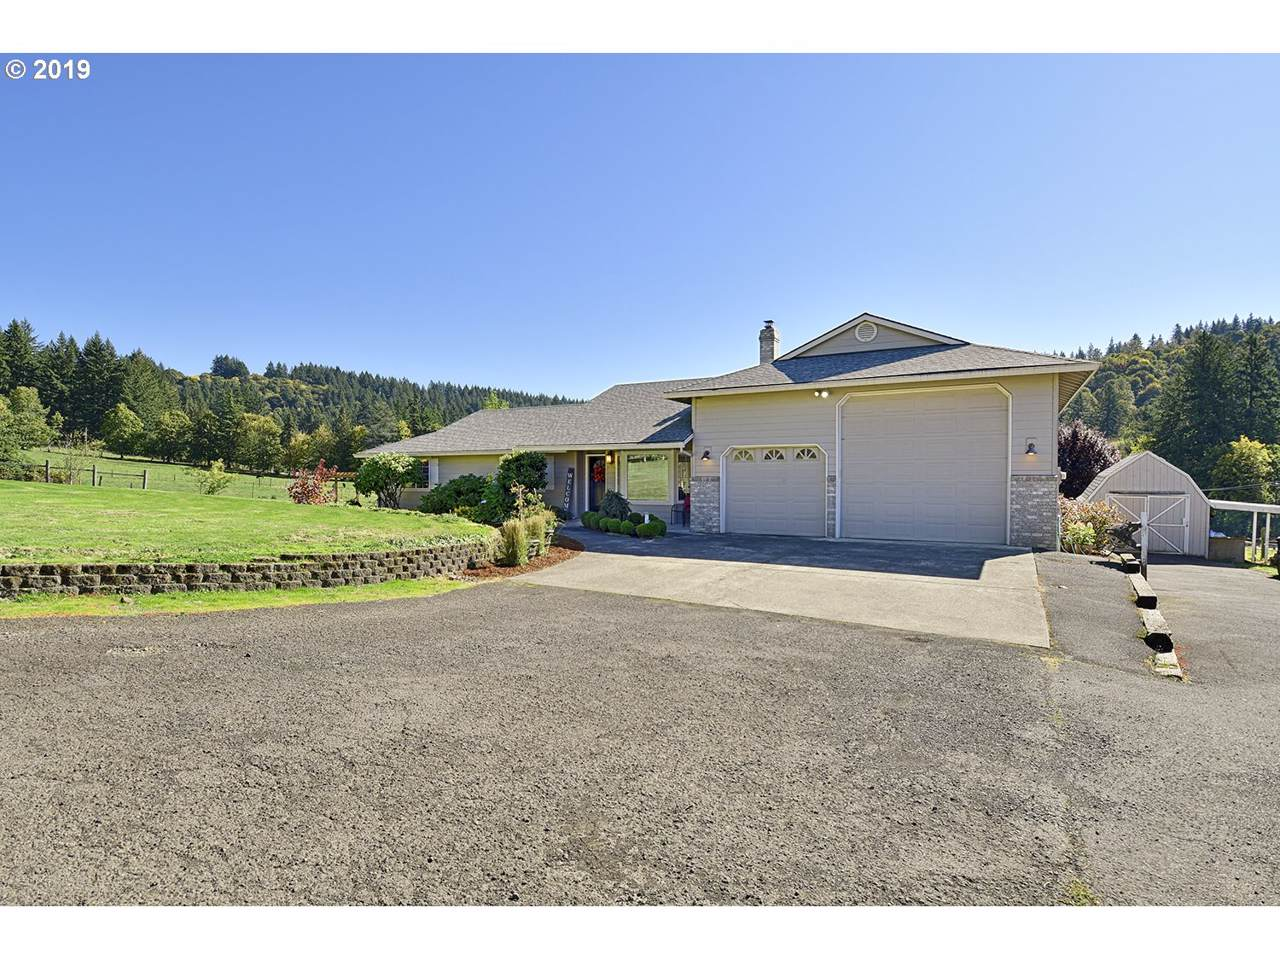 19450 Borges Rd - Photo 1